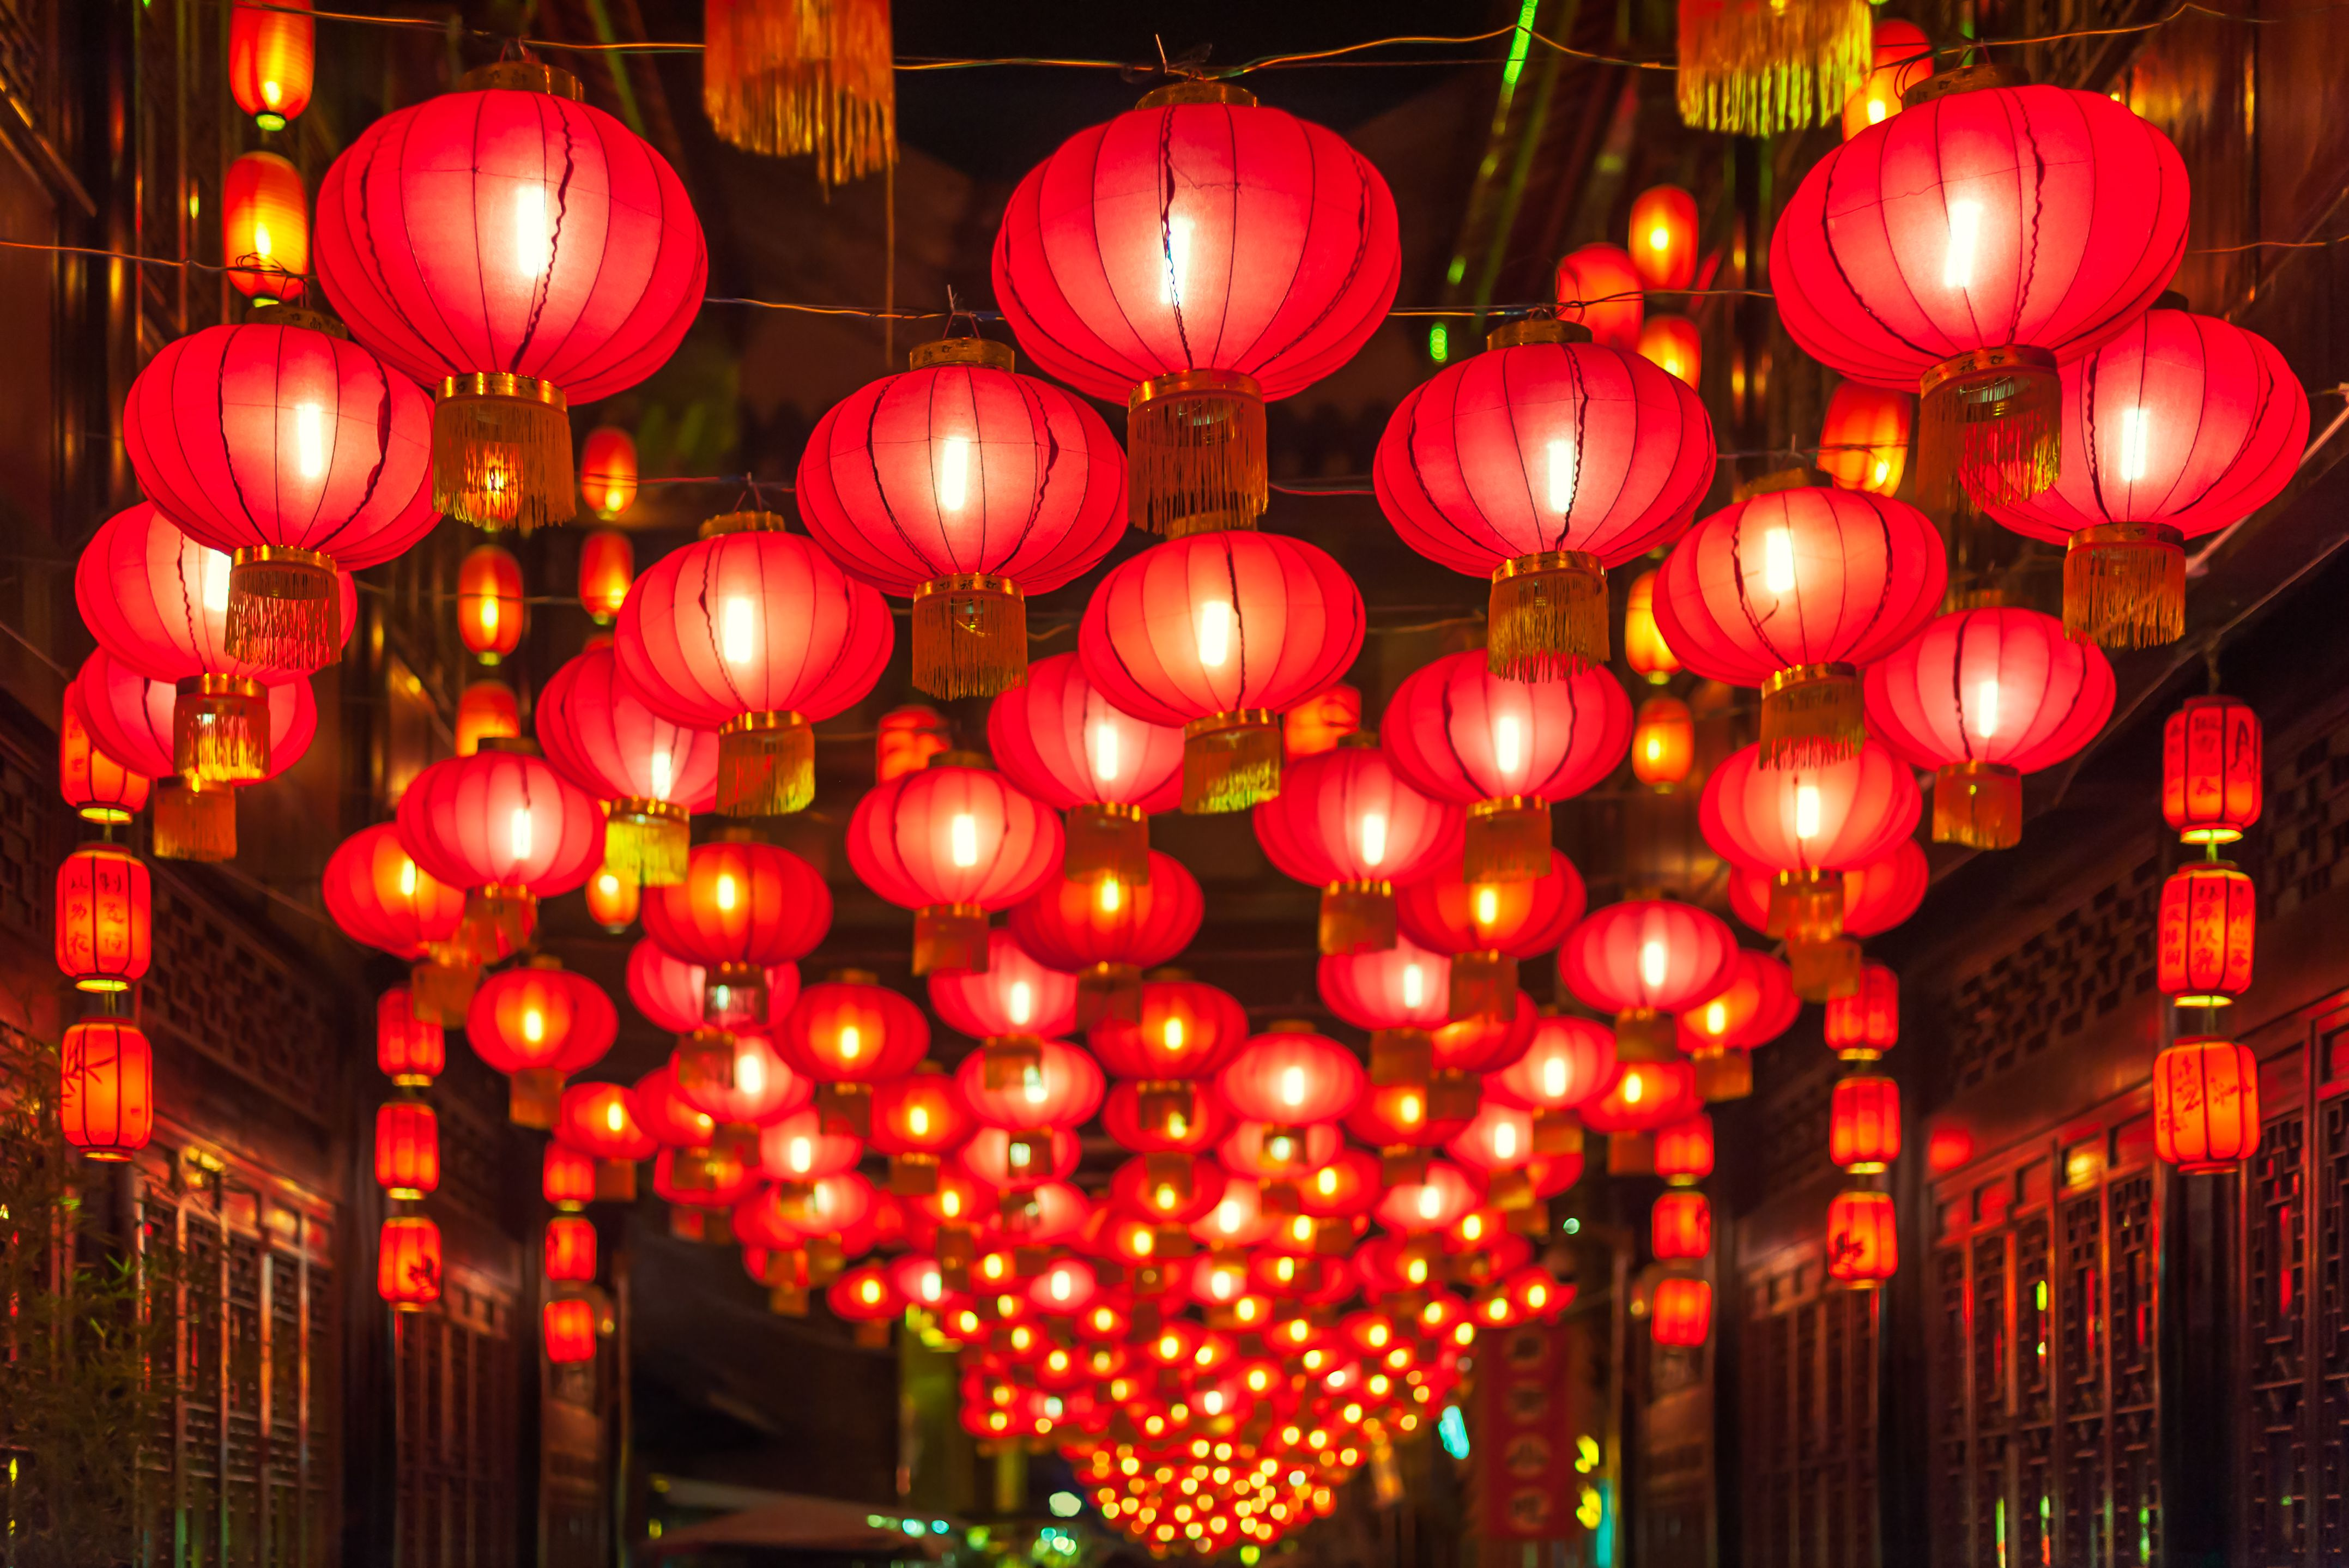 Chinese New Year Celebrations And The Lantern Festival